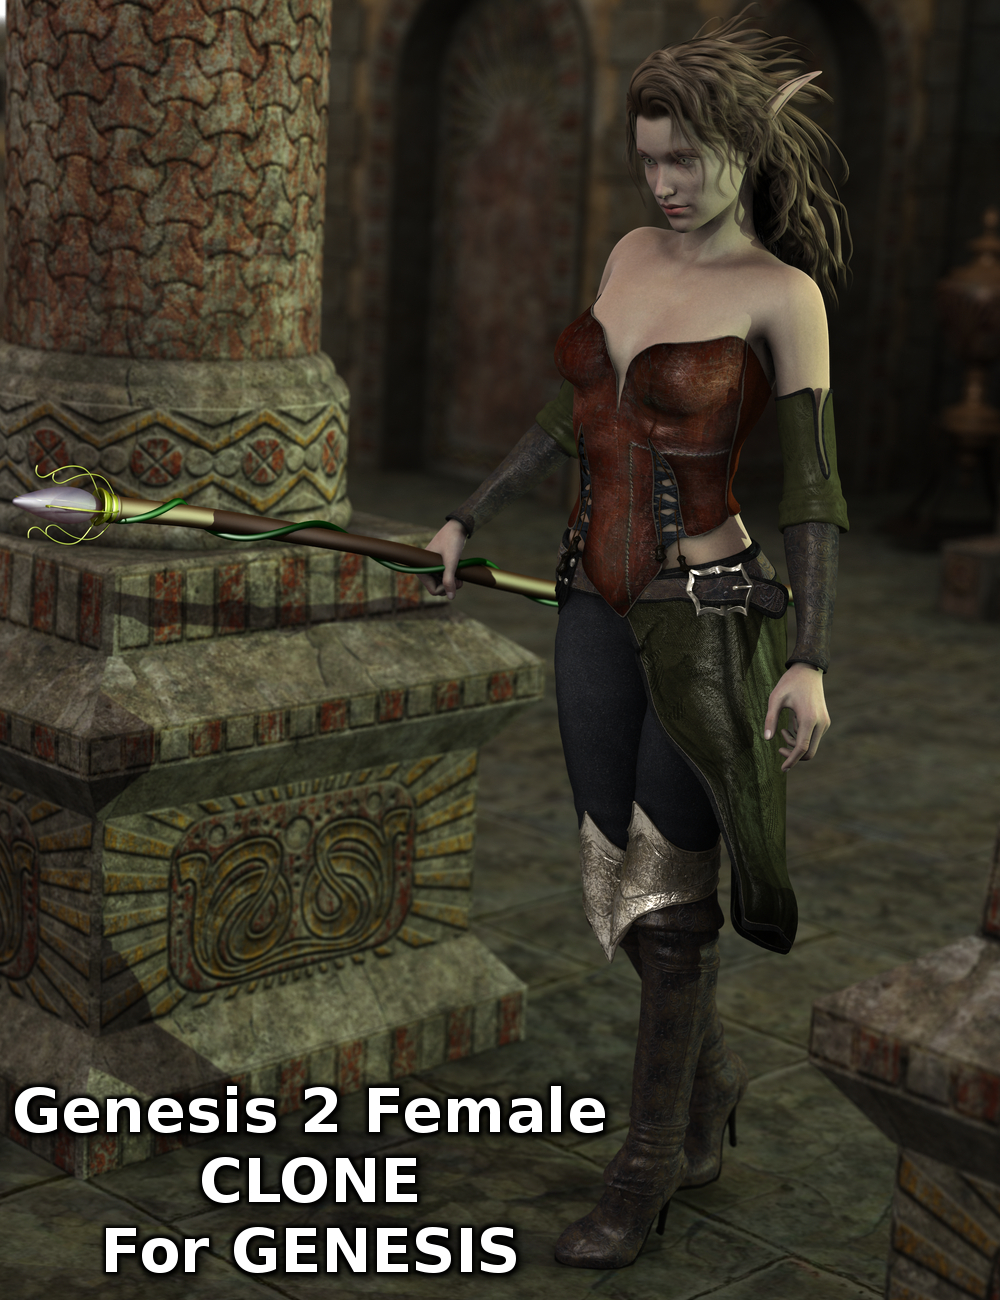 Genesis 2 Female Clone for Genesis by: Sickleyield, 3D Models by Daz 3D